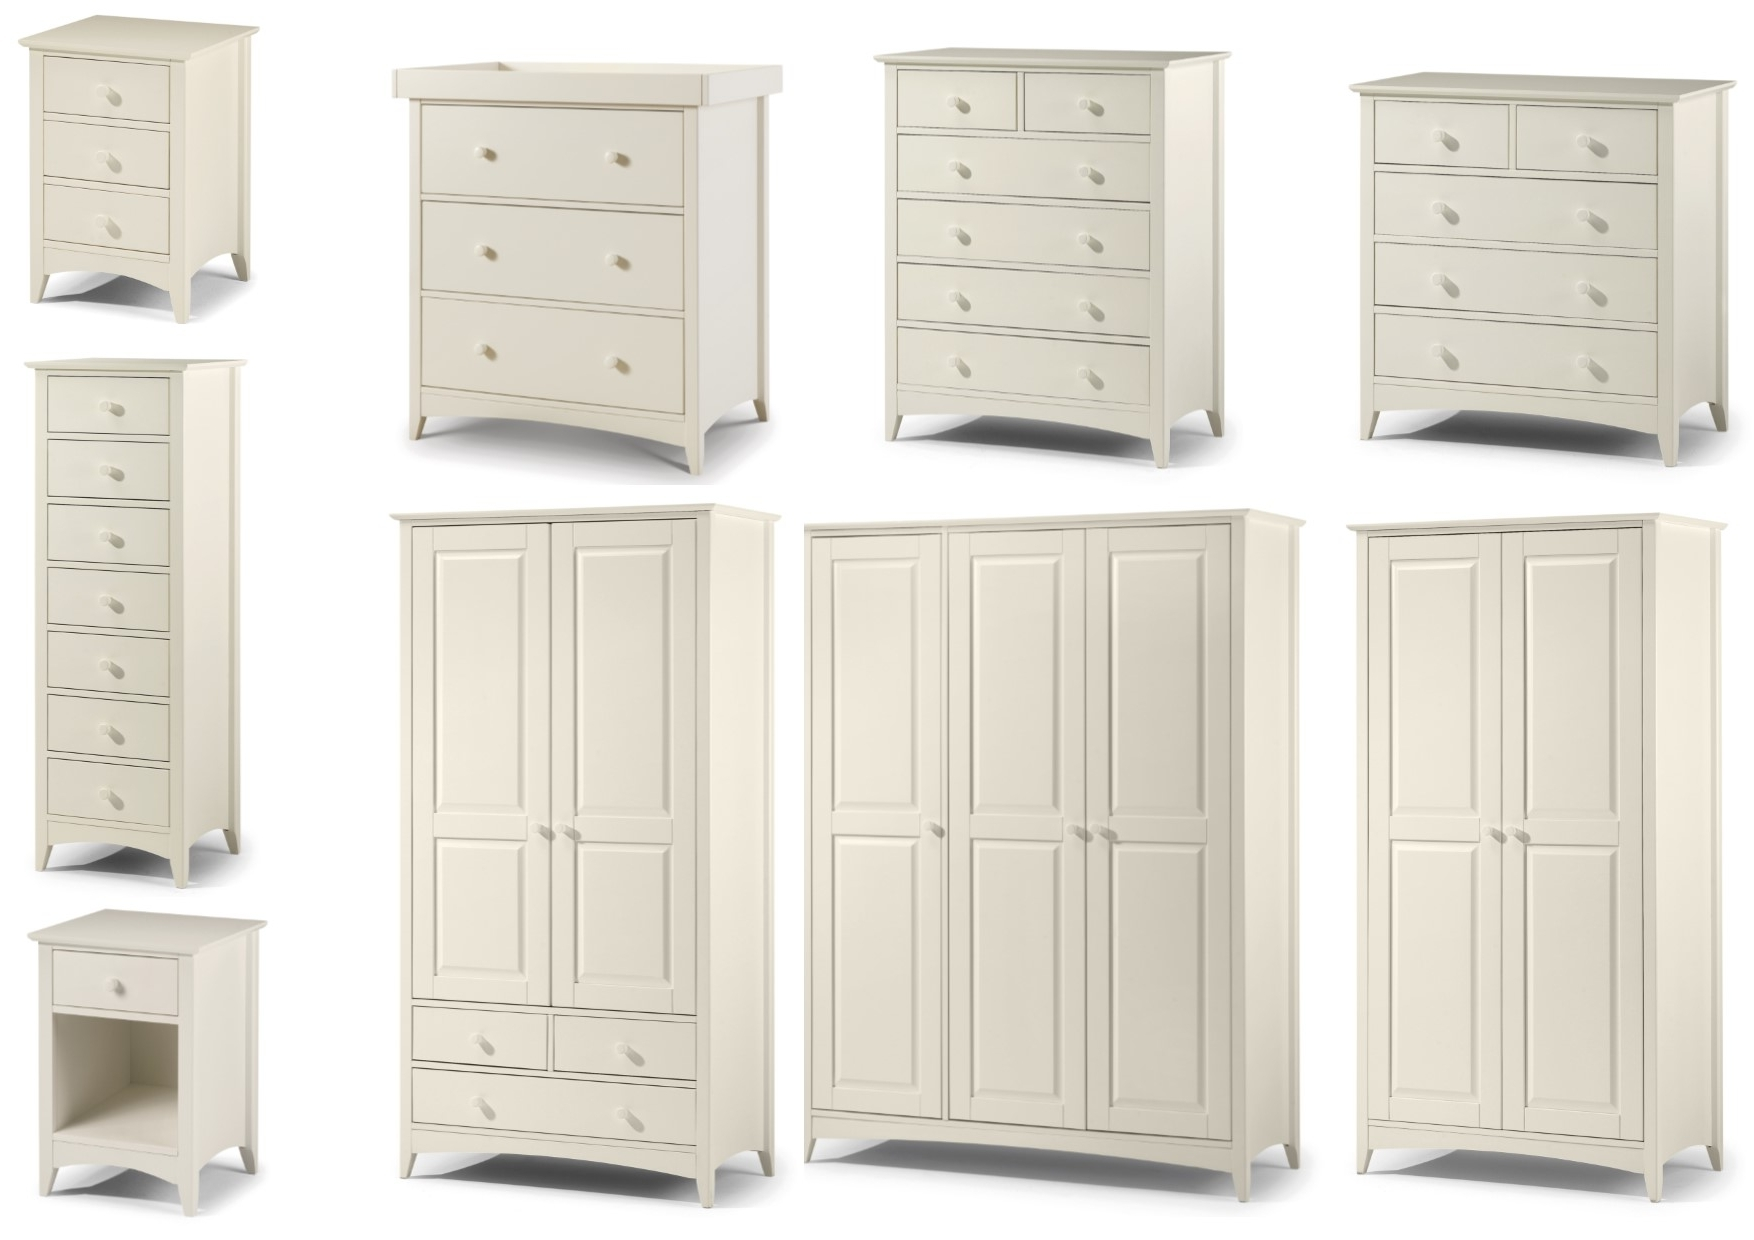 Trendy Julian Bowen Cameo Wardrobes Pertaining To Julian Bowen Cameo Stone White Bedroom Range – Bedside Drawers (View 14 of 15)